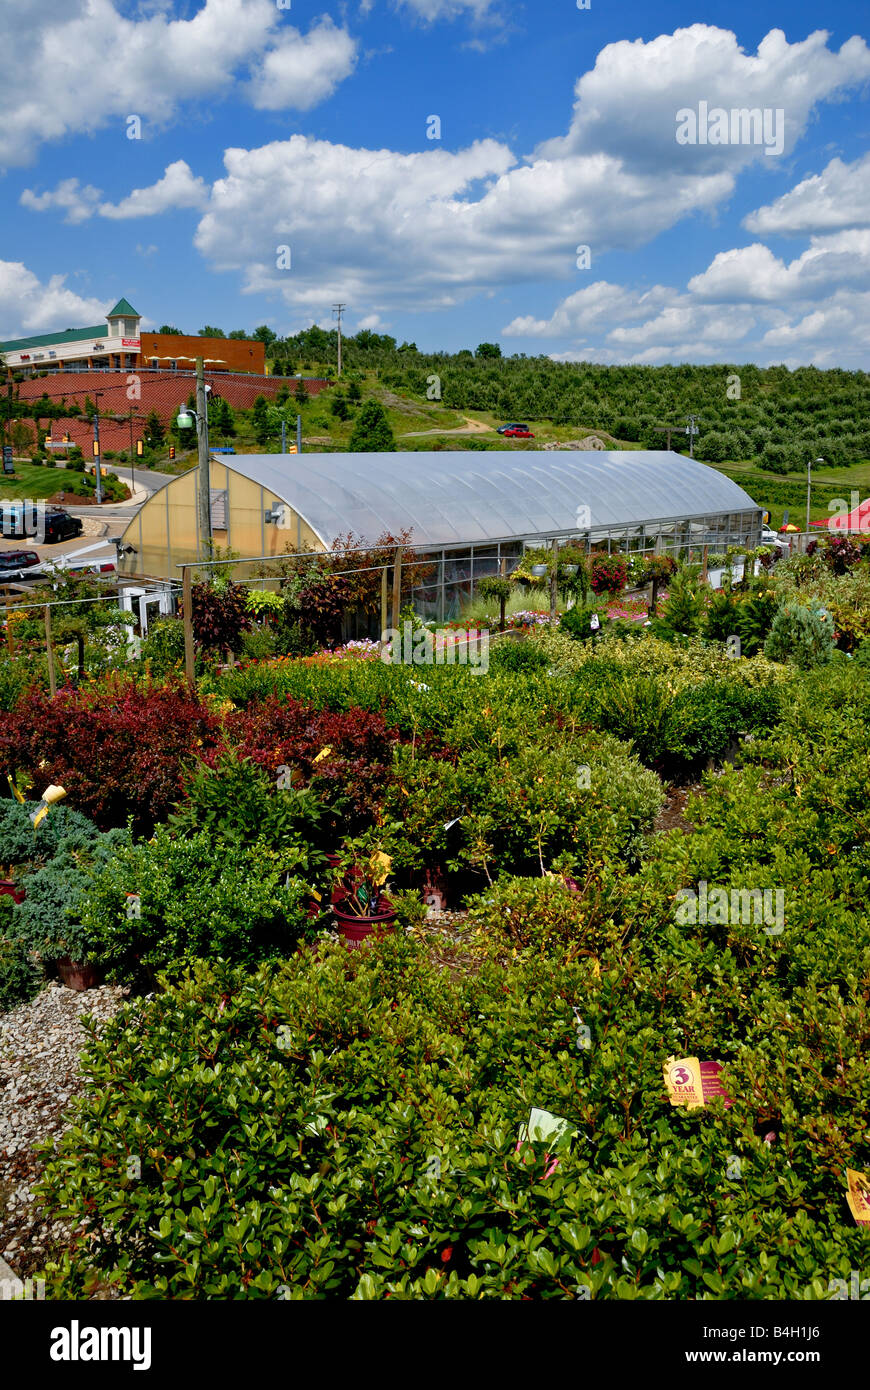 A sea of shrubbery surrounds one of the many greenhouses at Soergel Orchards & Farm Market in Wexford, Pittsburgh, - Stock Image